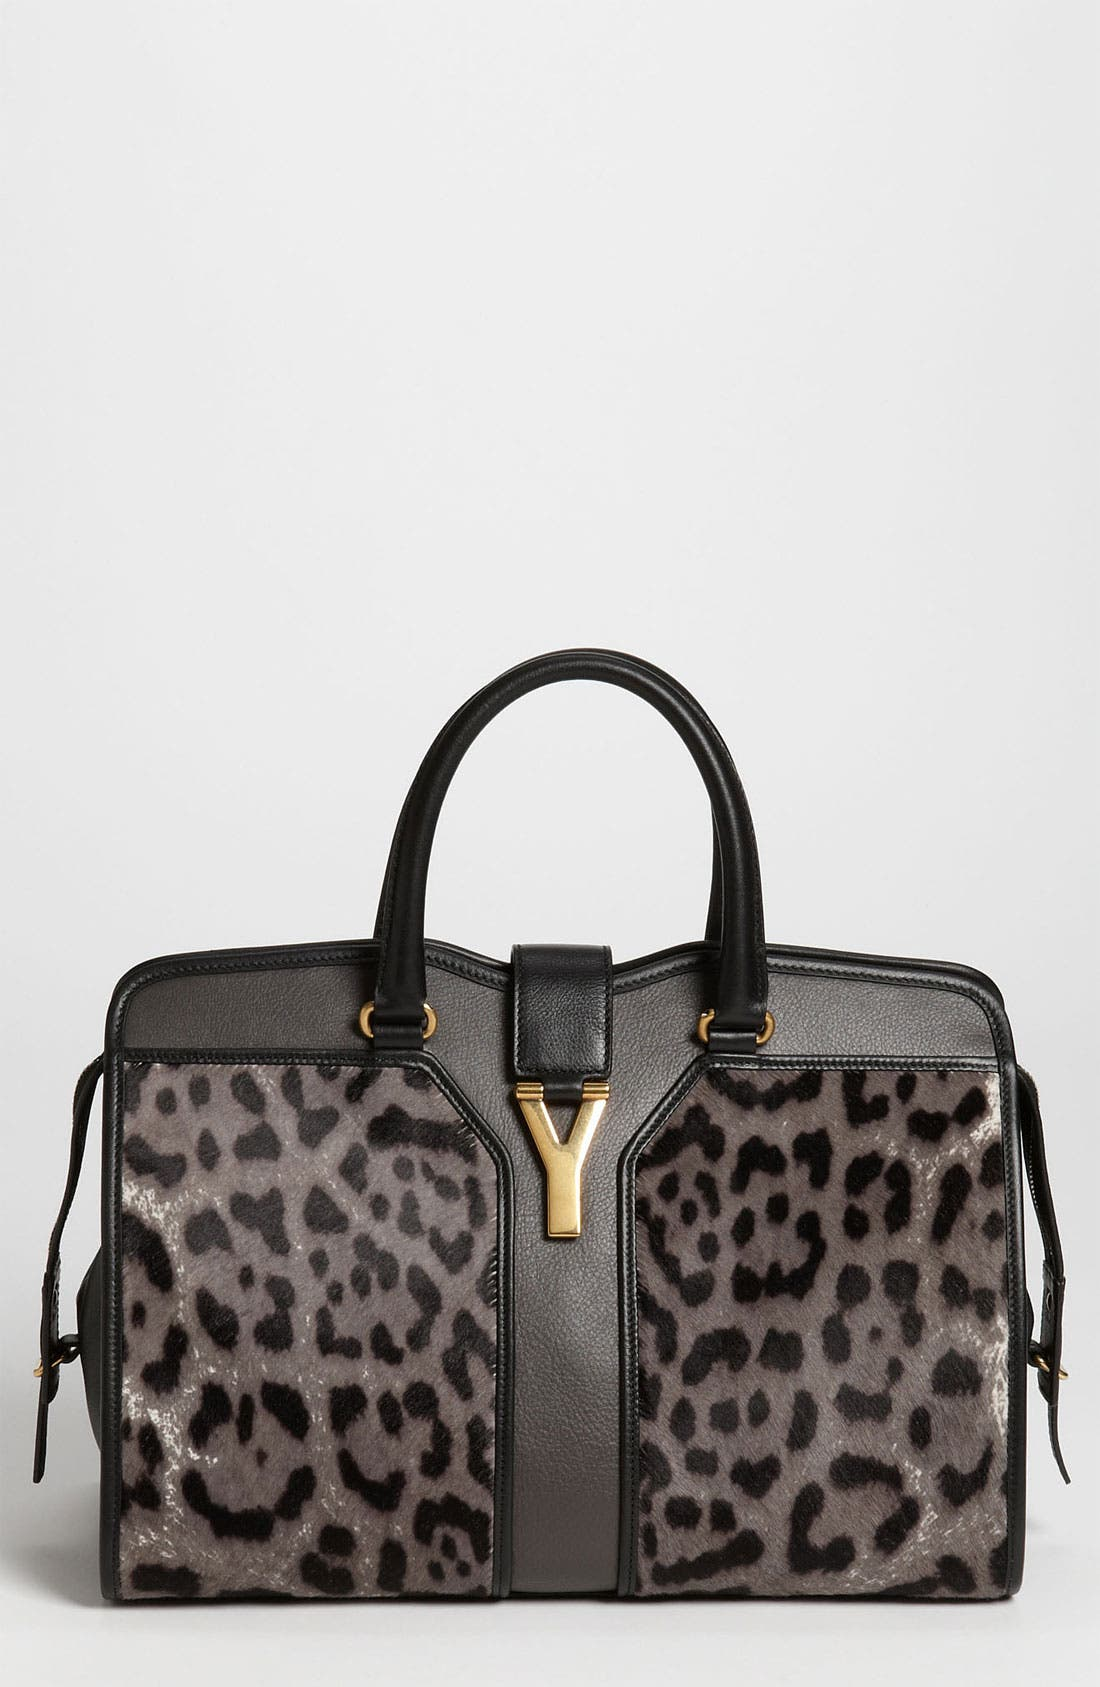 Main Image - Yves Saint Laurent 'Cabas Chyc - Medium' Calf Hair Satchel